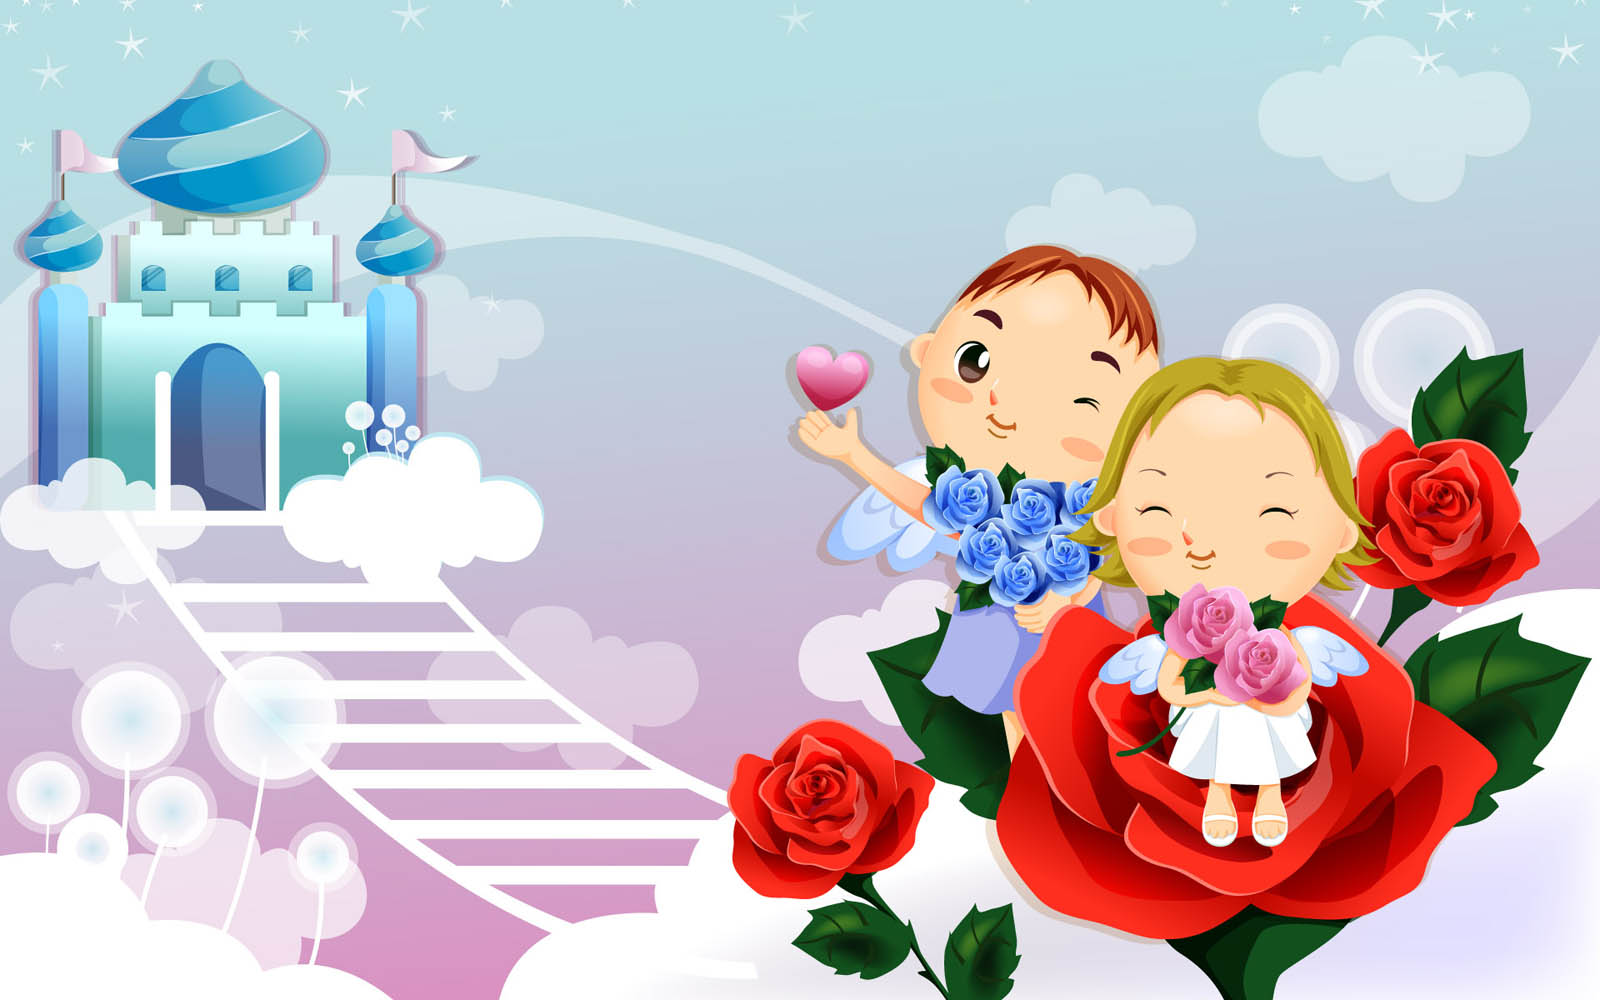 Love cartoon Wallpapers : Wallpaper Kartun cinta Romantis